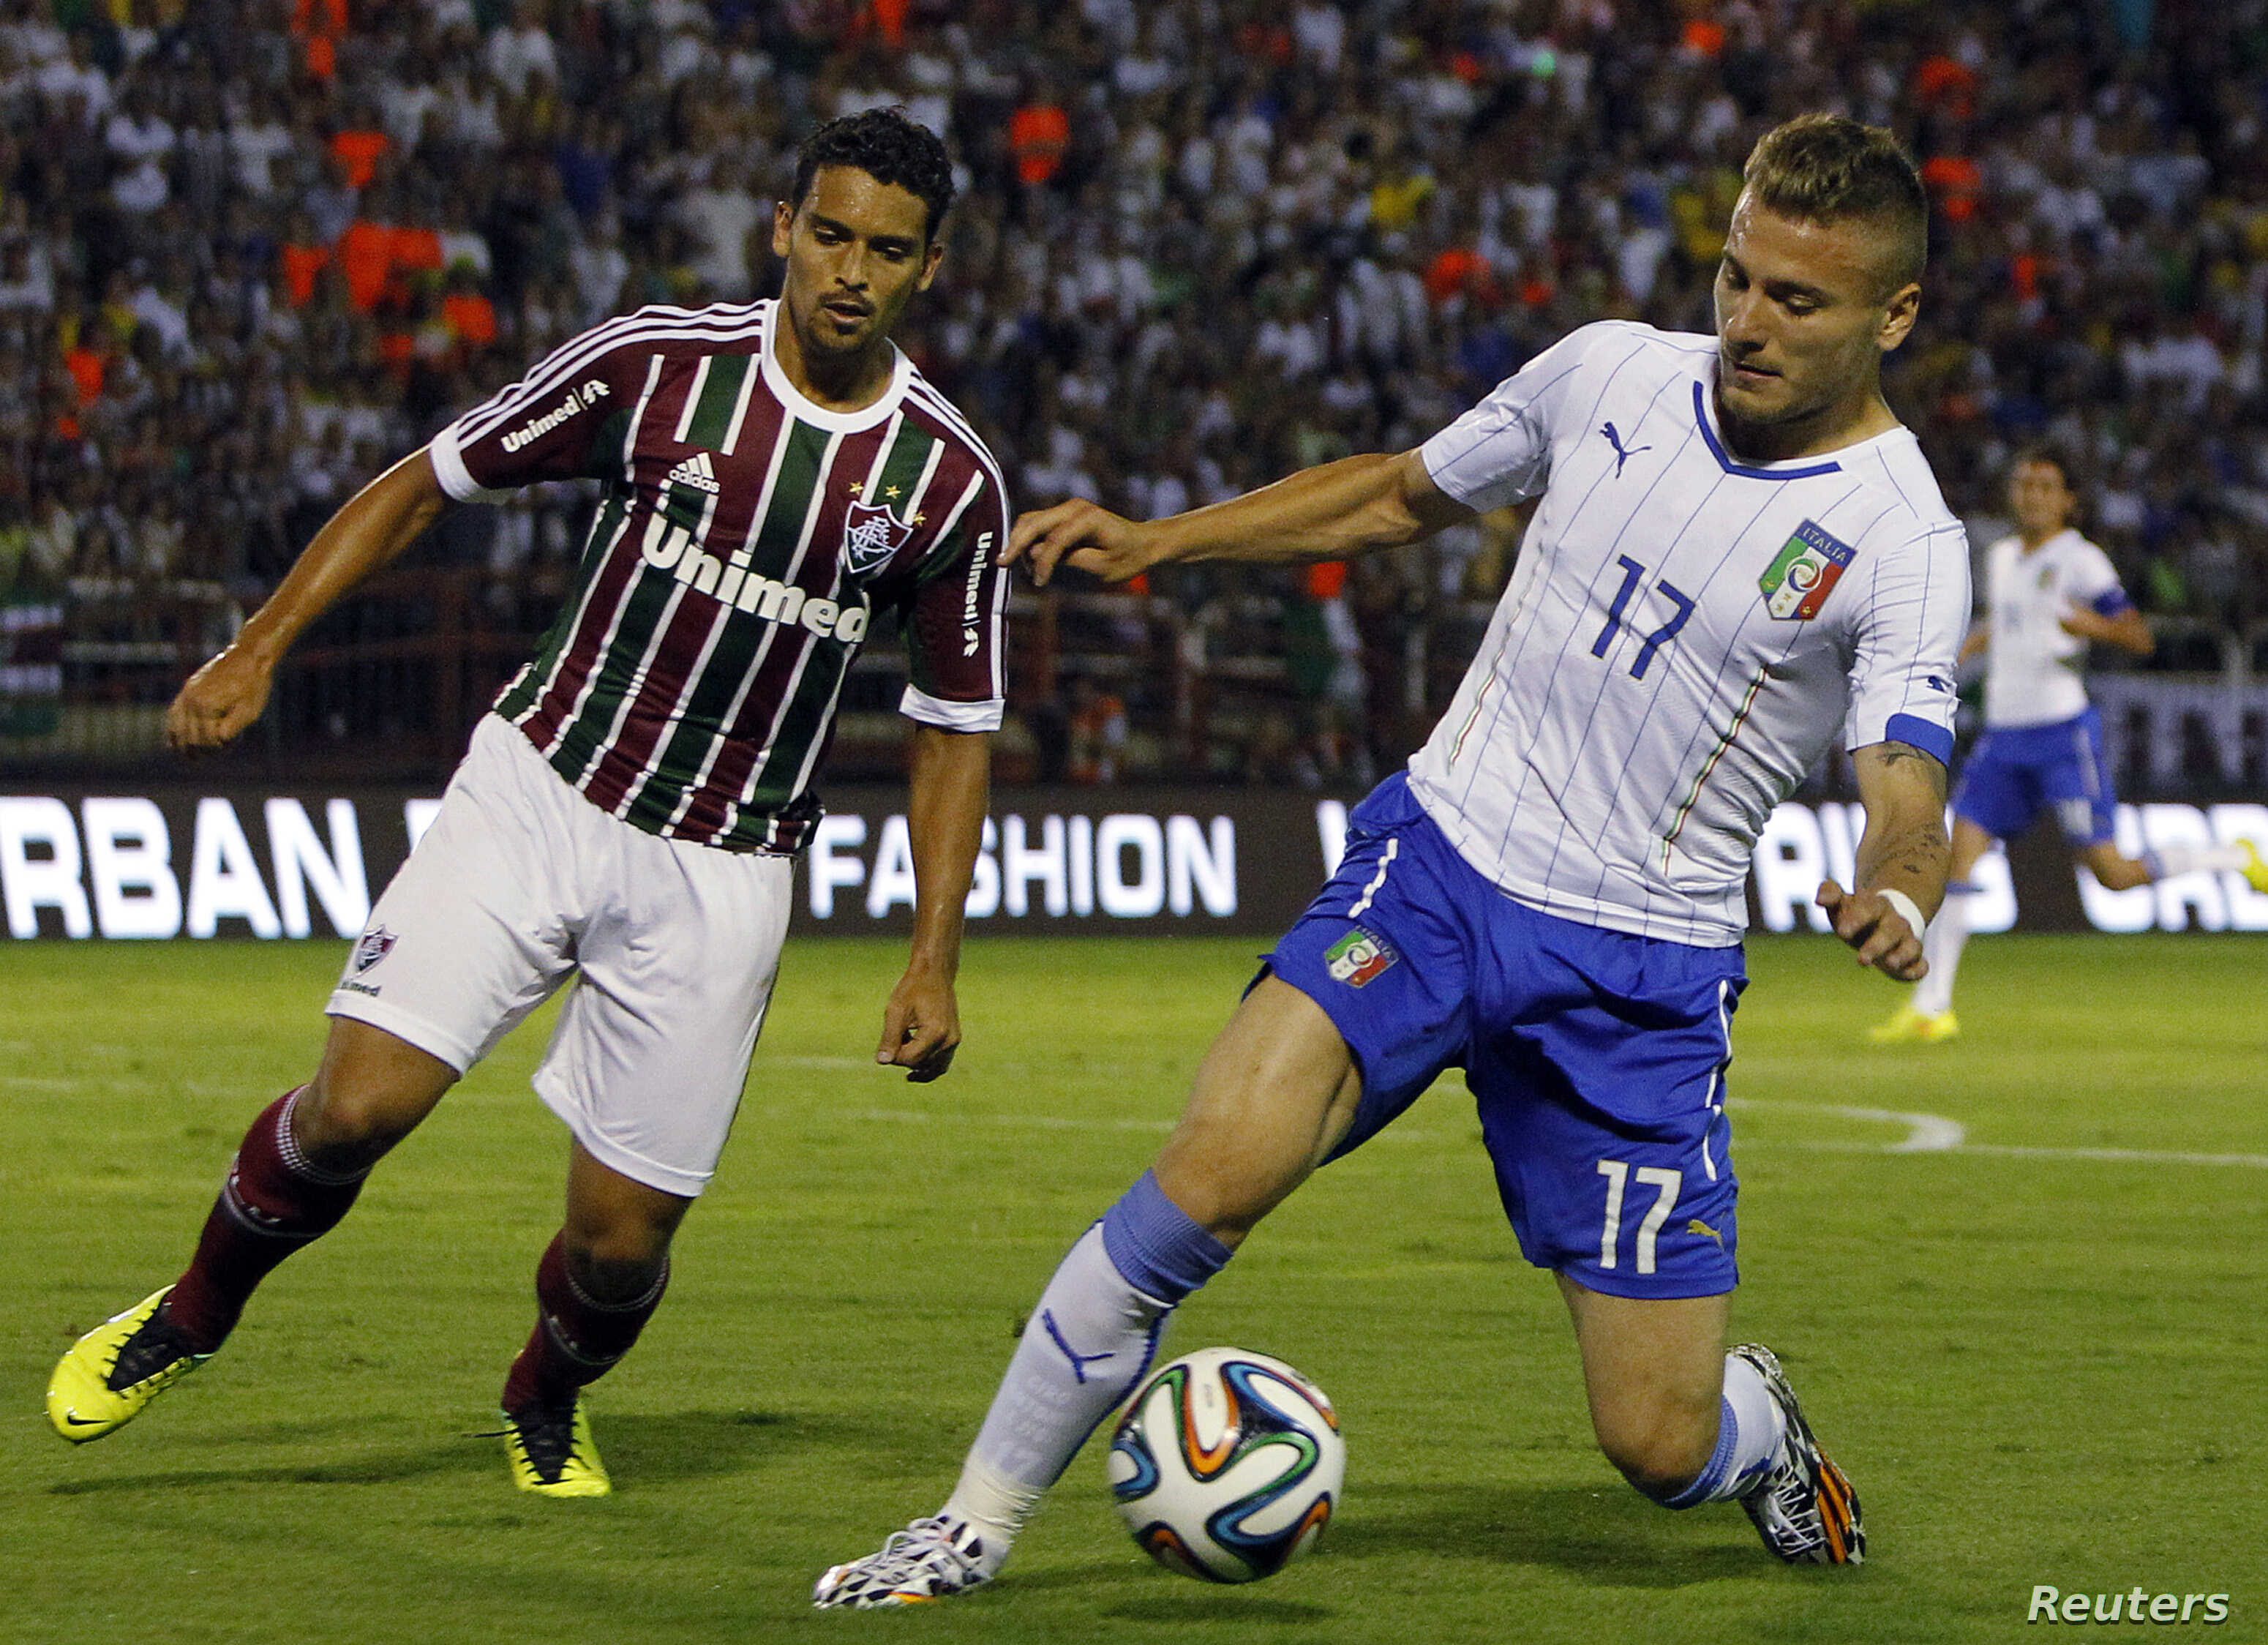 Italy's Ciro Immobile (R) fights for the ball with Fluminense's Jean during a friendly soccer match ahead of the 2014 World Cup at the Cidadania stadium in Volta Redonda, Rio de Janeiro state, Brazil, June 8, 2014.